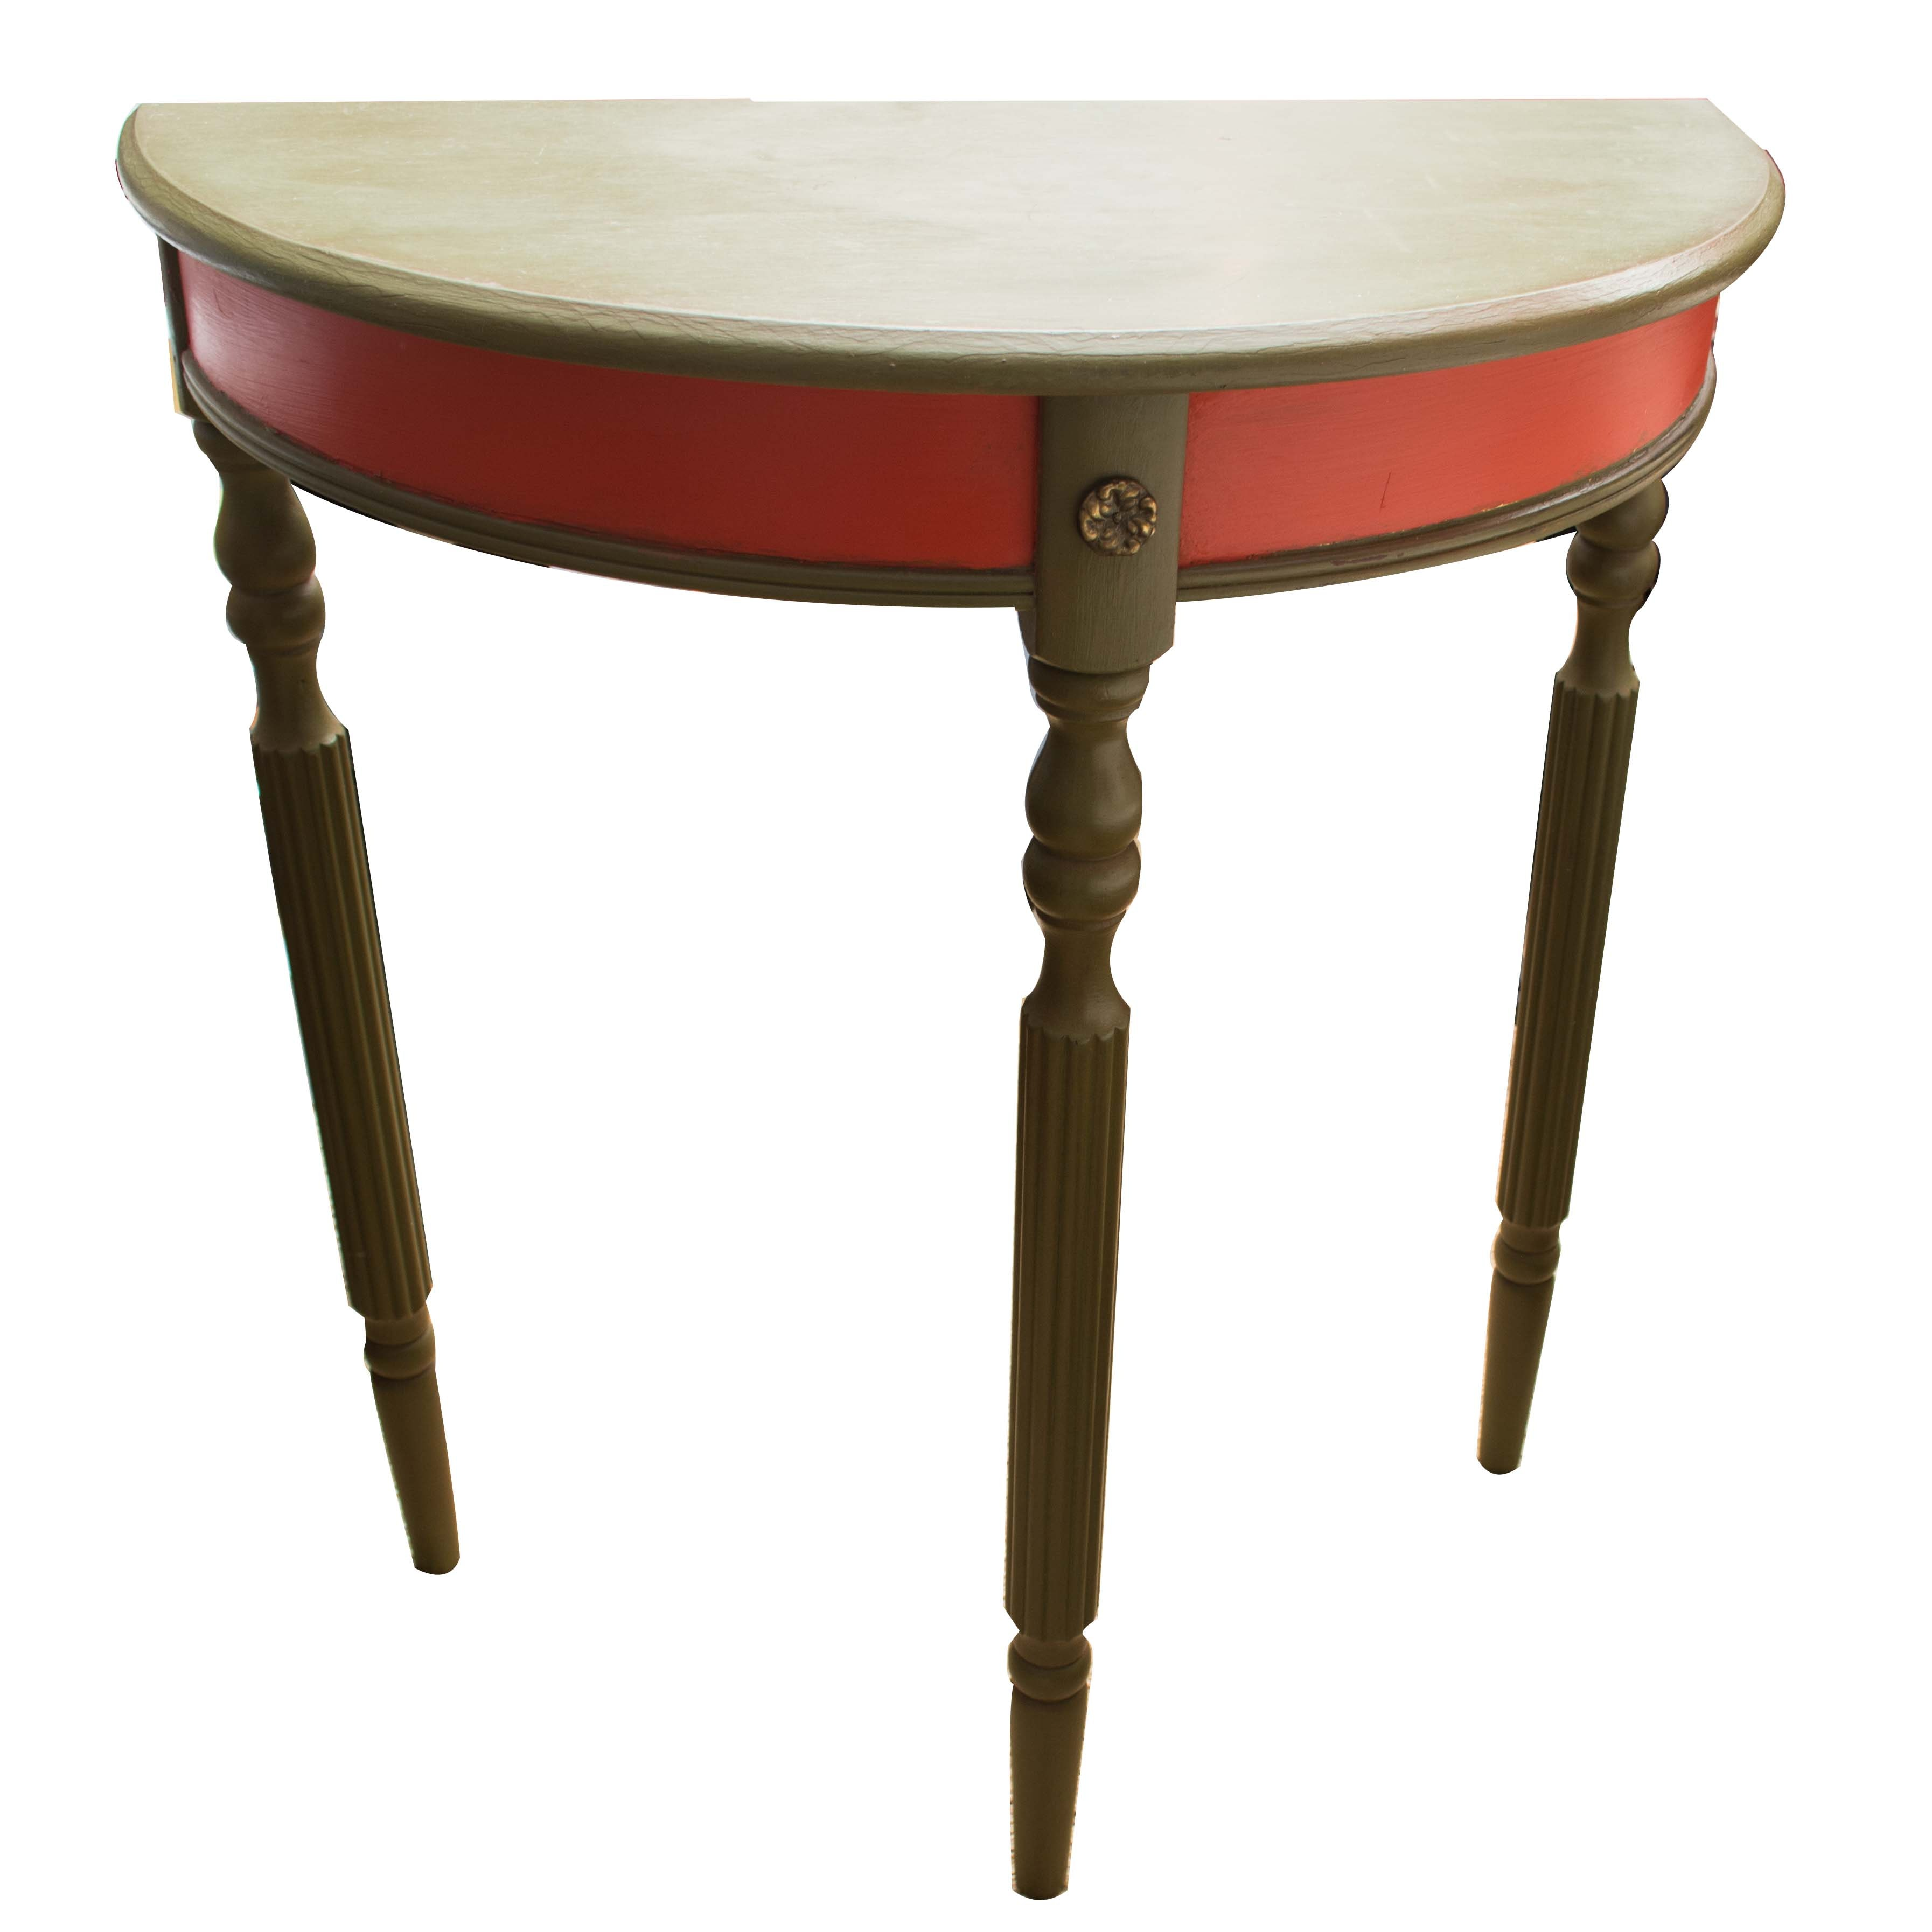 Painted Sheraton Style Demilune Table